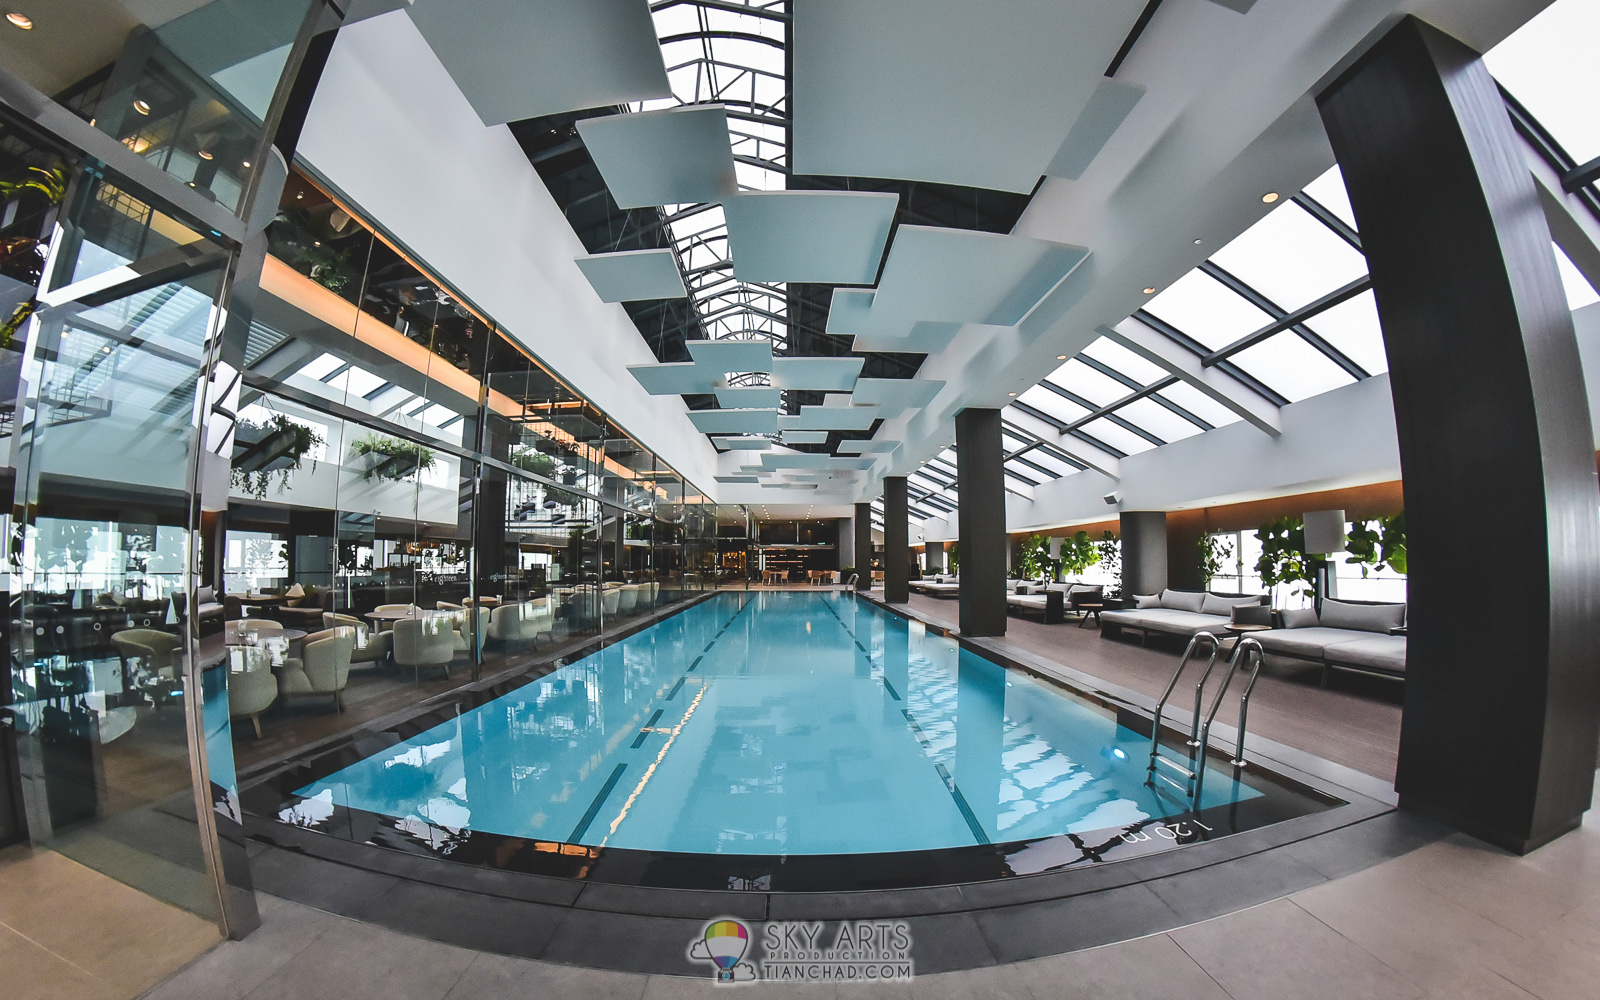 The Undiscovered Swimming Pool & Restaurant @ Genting Highlands 云顶 ...